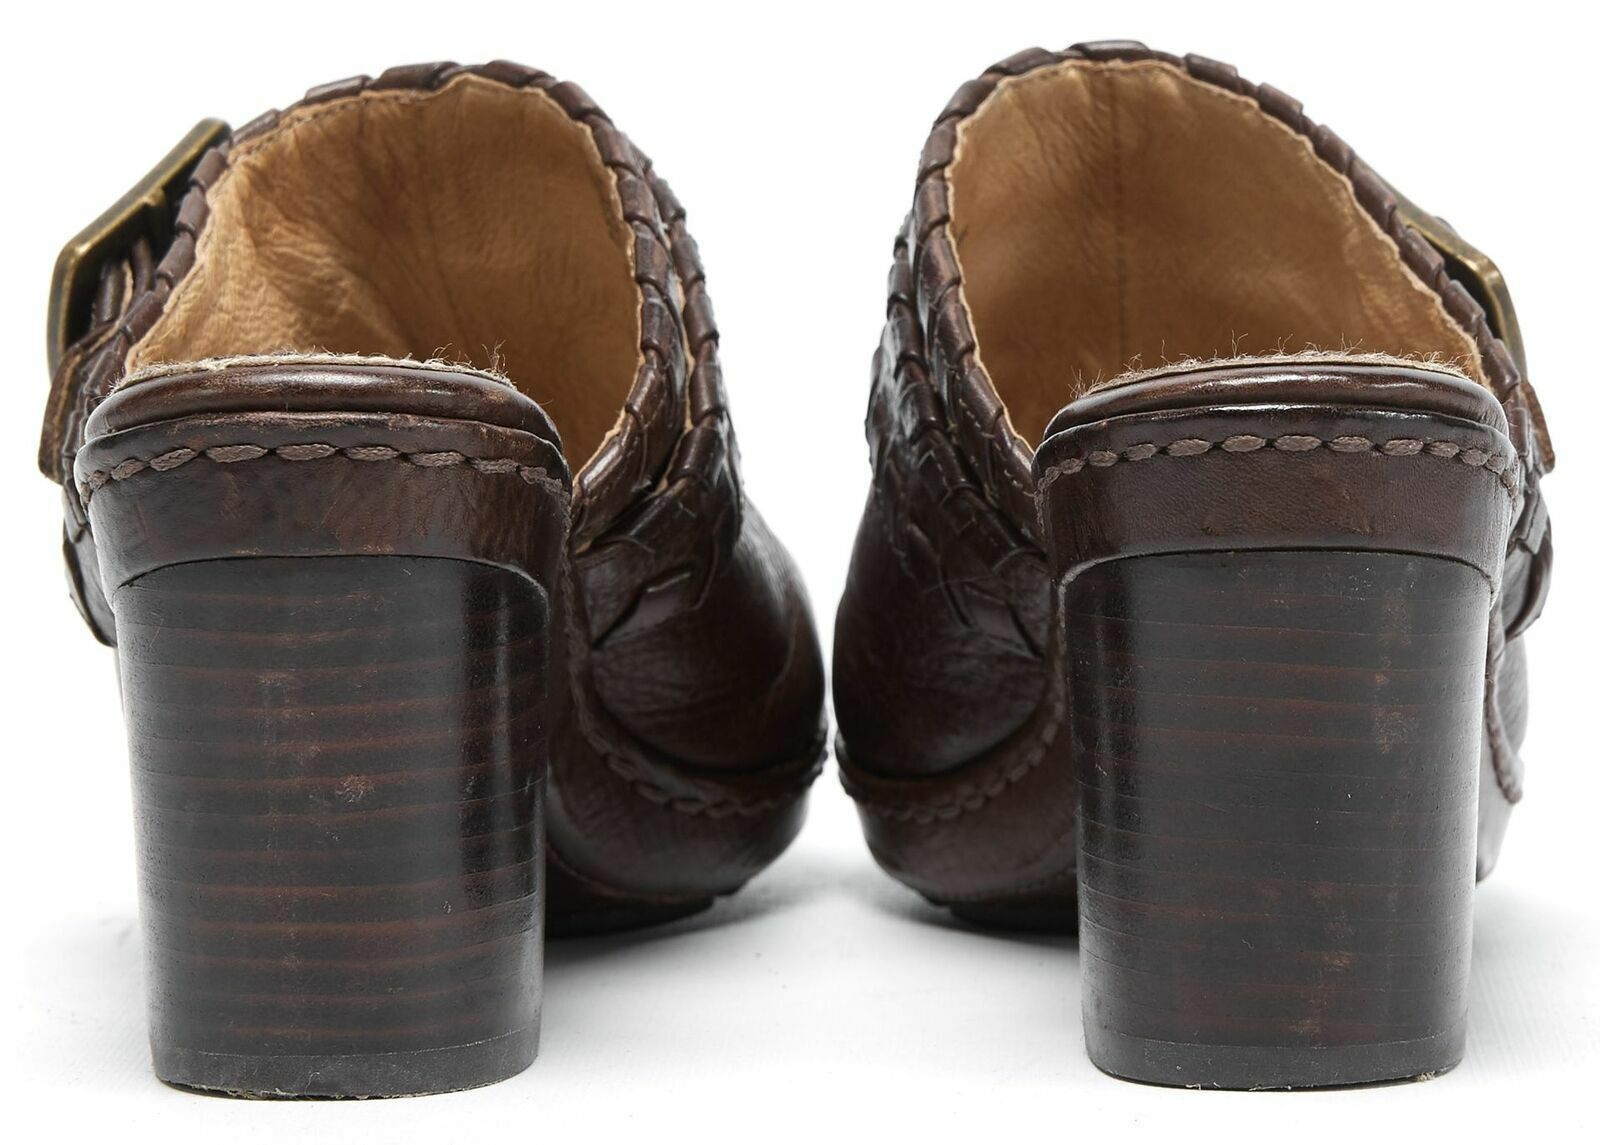 FRYE Brown Leather Candy Candy Candy Lace Clog Heels Size 8M aa1aef